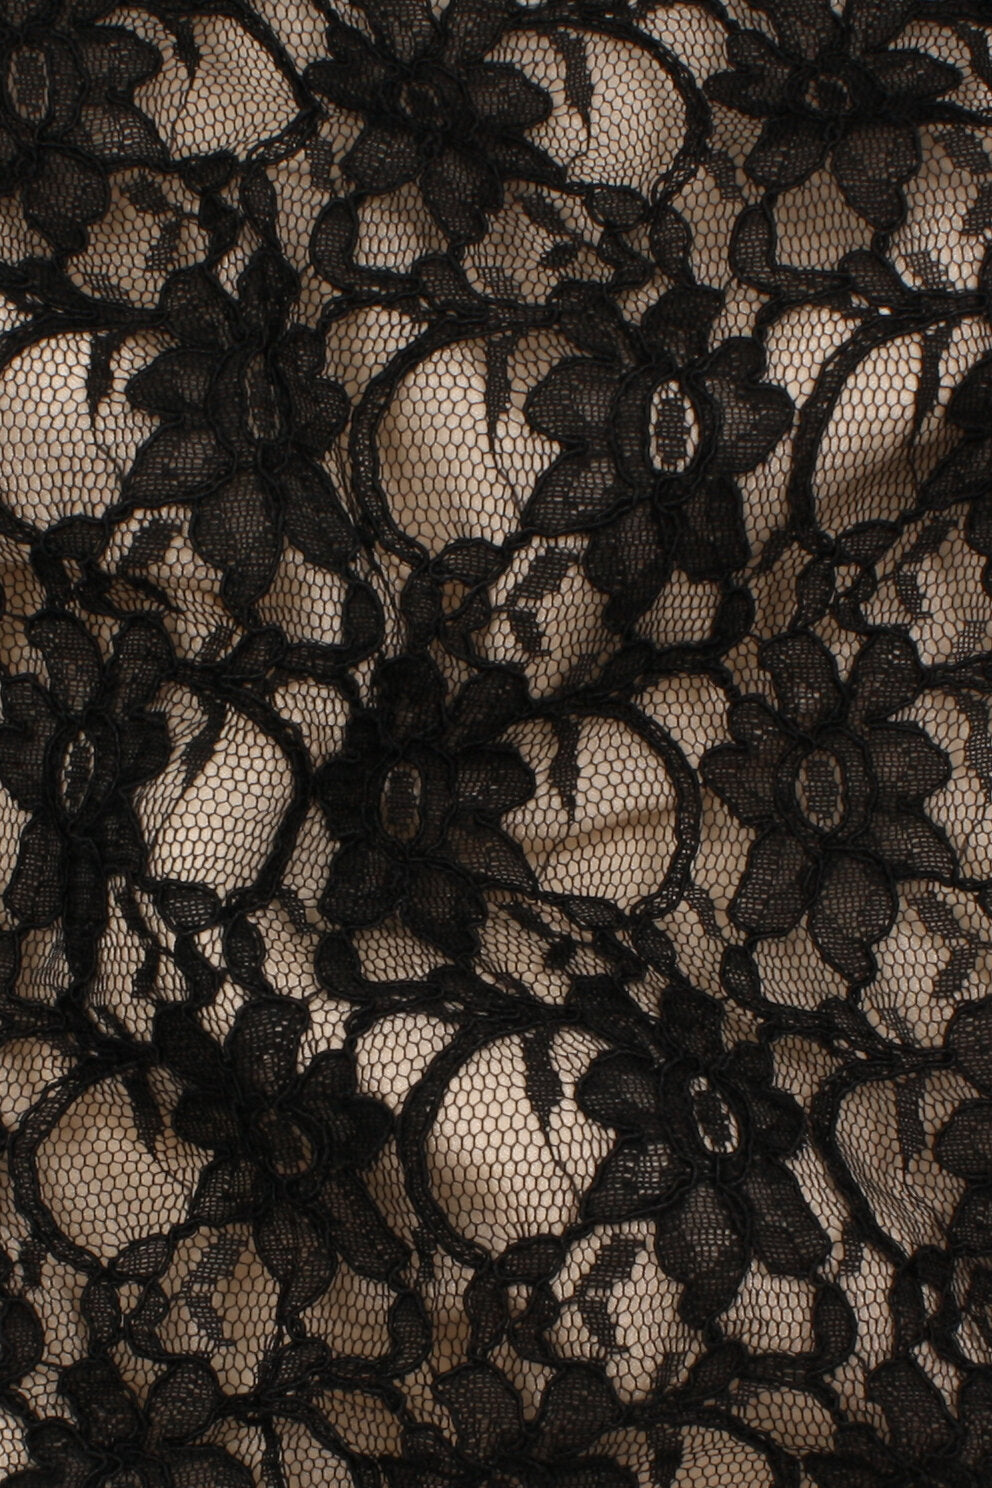 Corded Xanna Lace Black